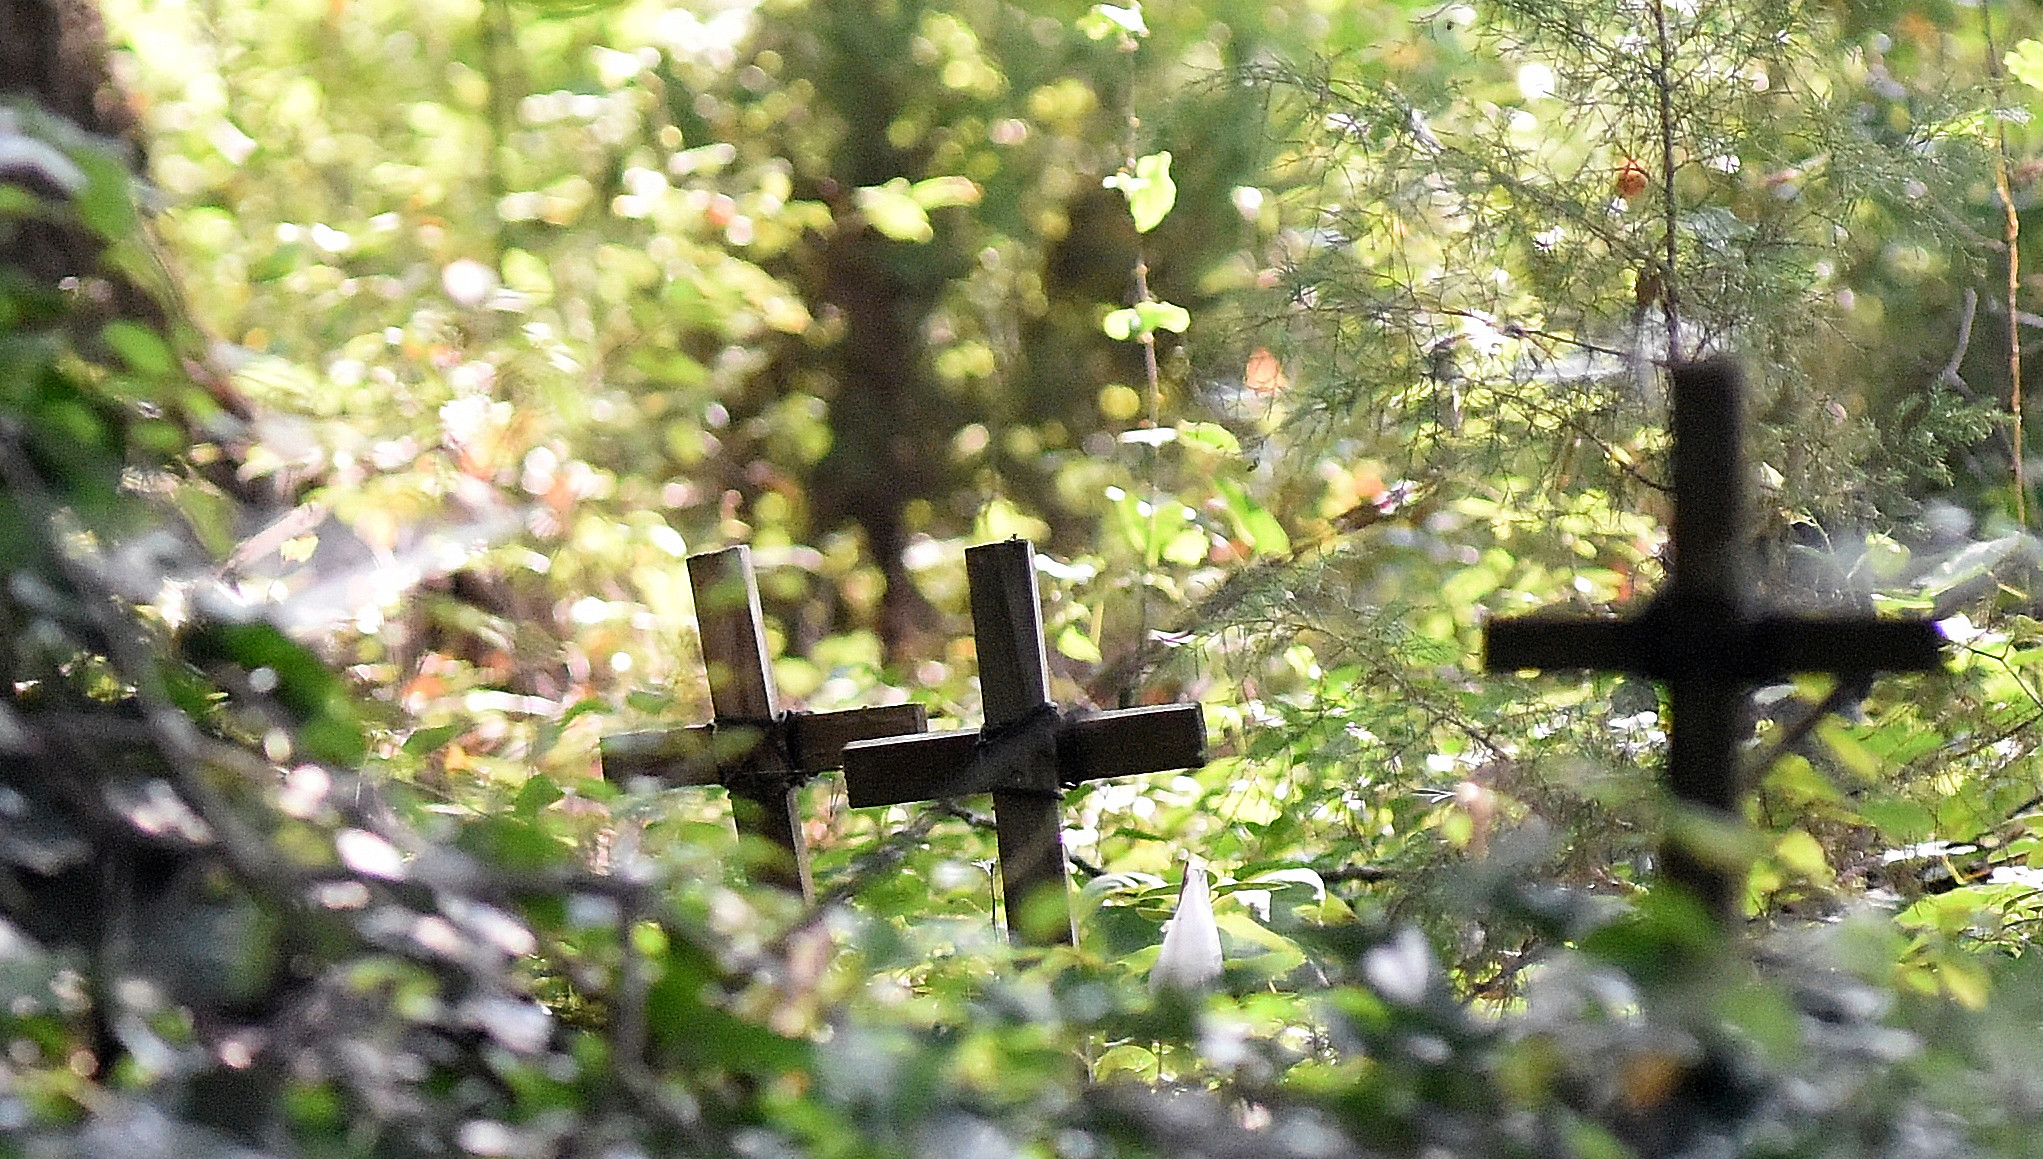 Hundreds of small wooden crosses, each representing a grave, protrude above the ground and foliage of the Black Pioneers Cemetery in Euharlee.